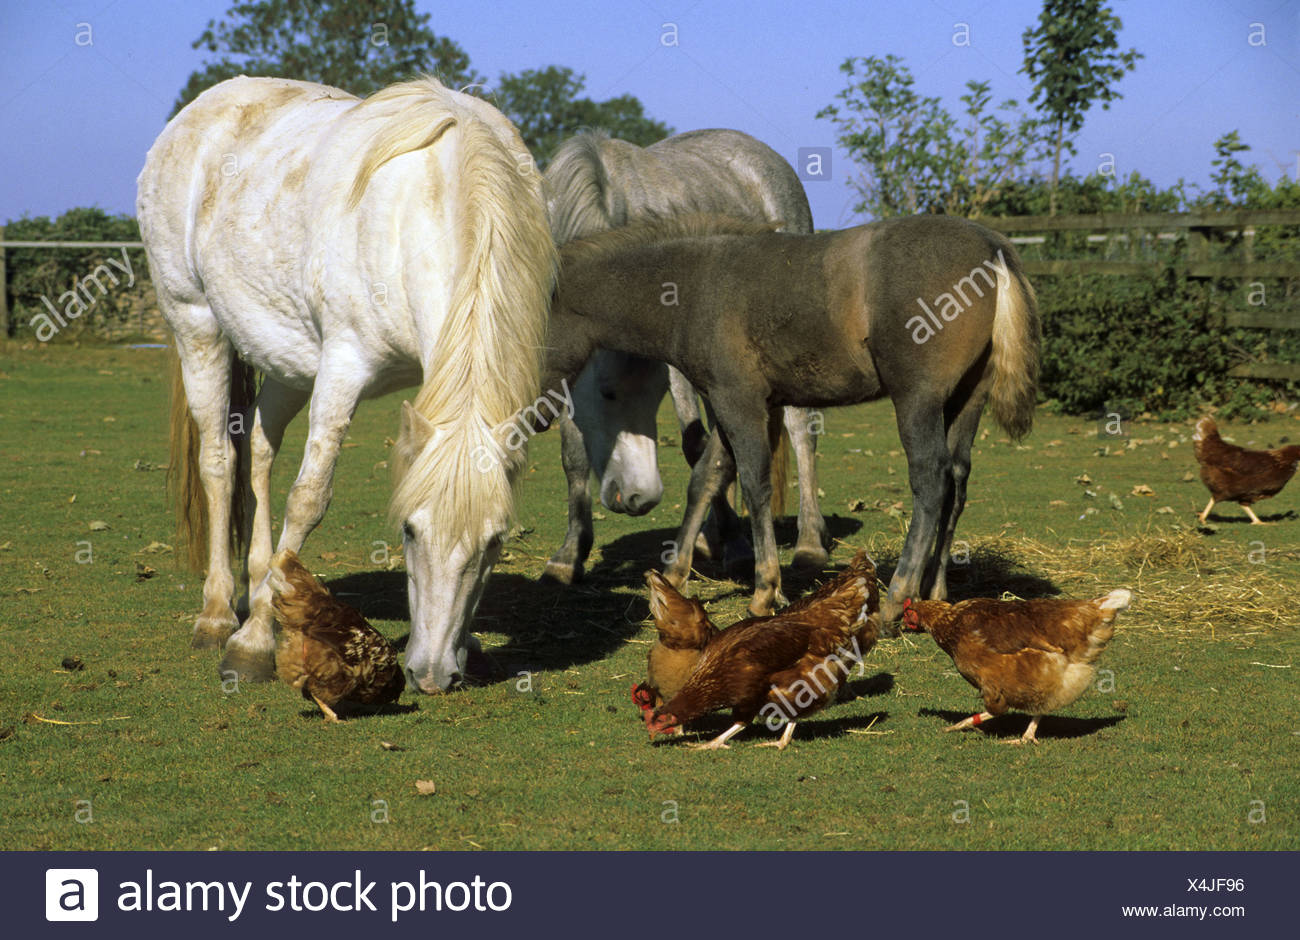 horse pony eriskay ponies and foal with free range hens in field